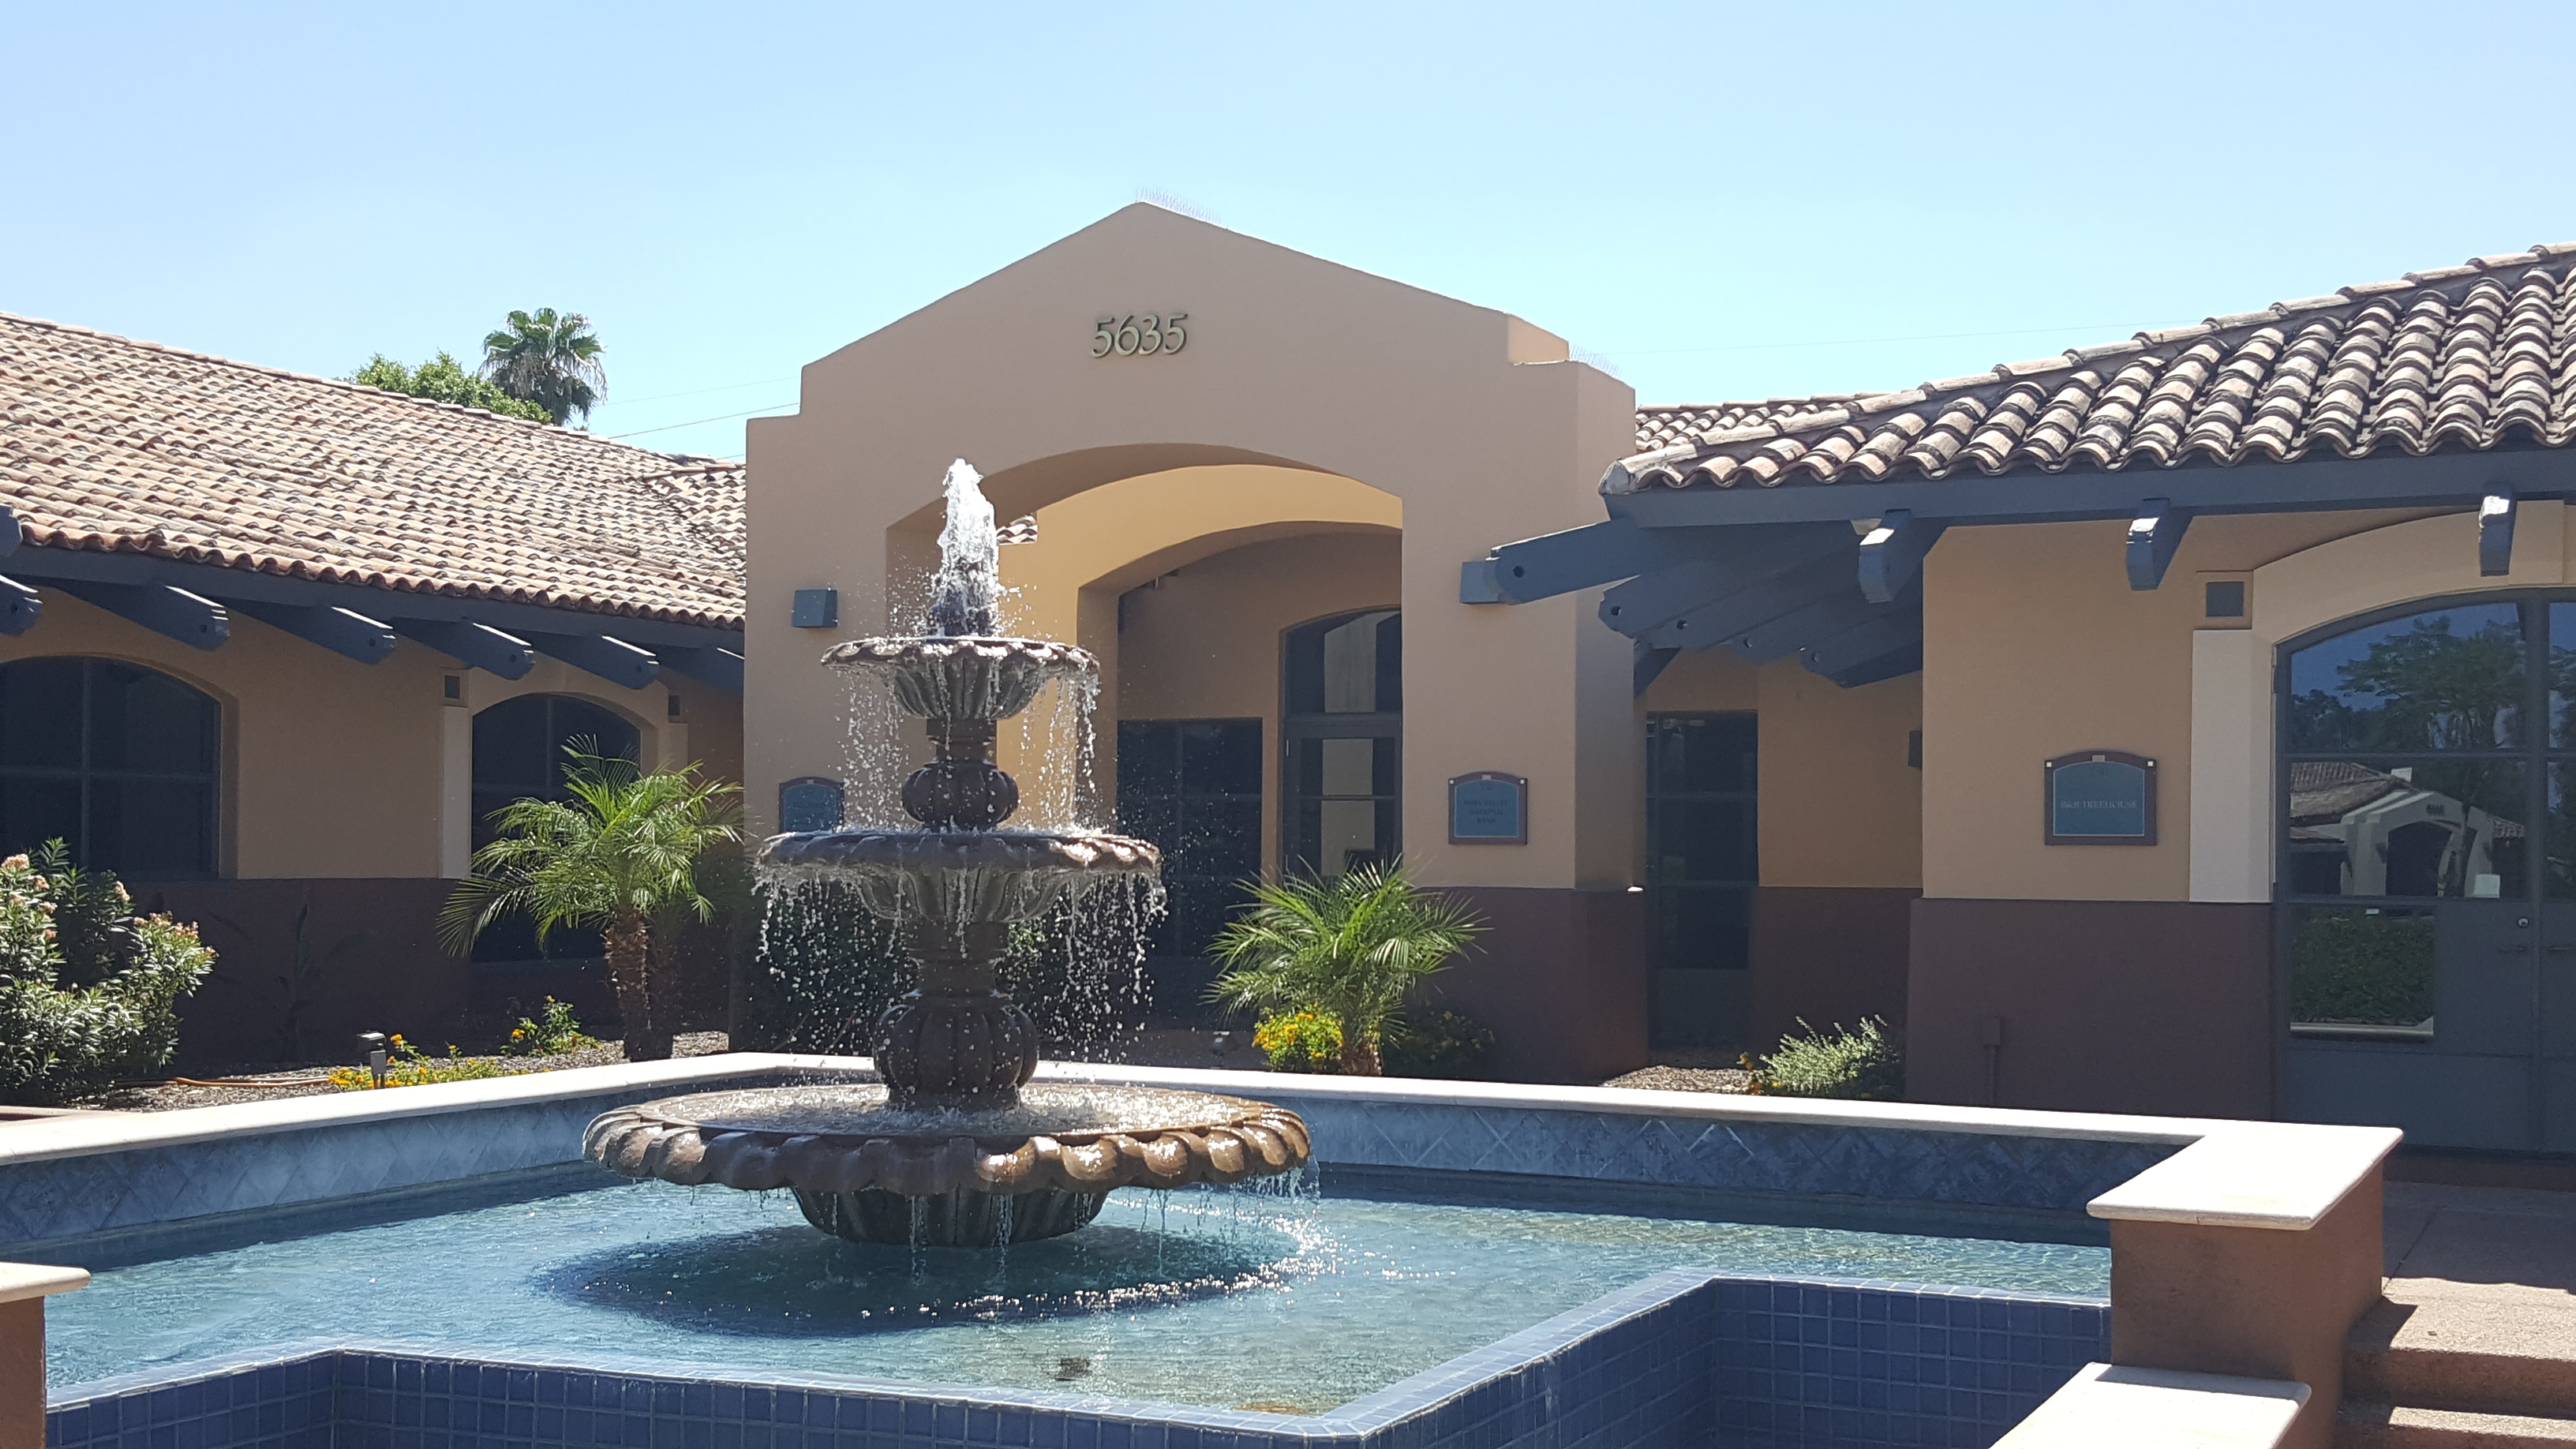 My AZ Lawyers Criminal defense and DUI law office - view of the front of the building